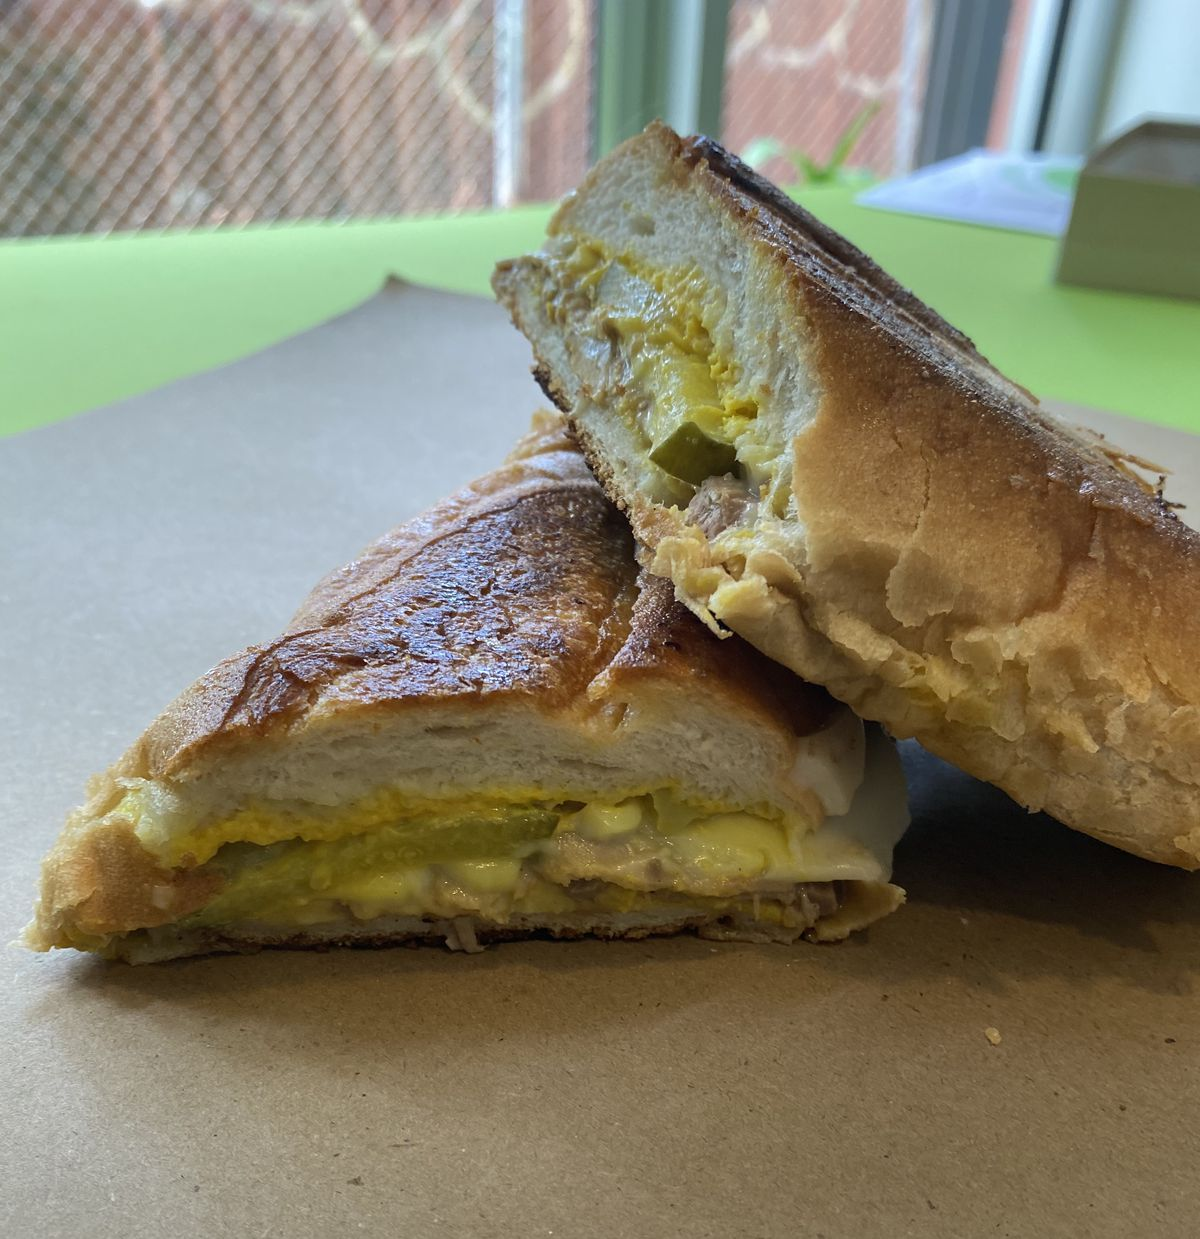 Two halves of a sandwich rest on top of one another are are filled with what appears to be eggs, cheese, and pickles